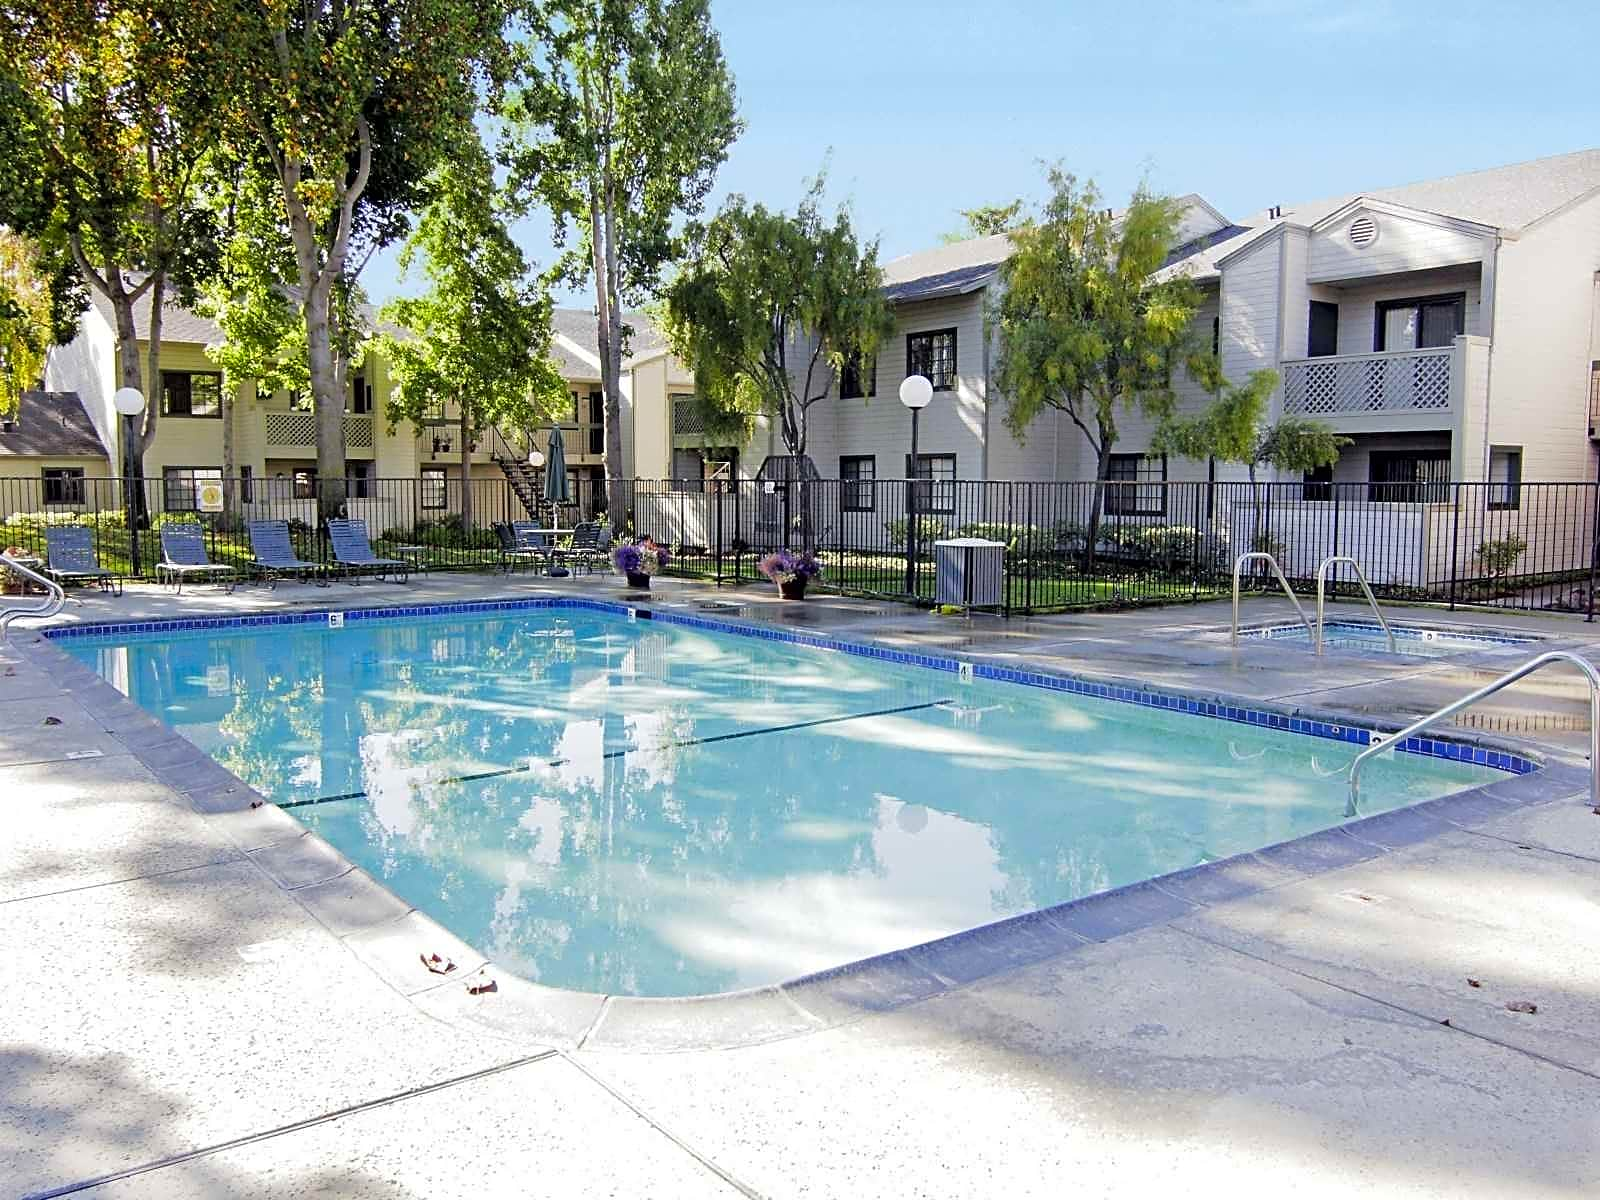 Photo: Hayward Apartment for Rent - $2025.00 / month; 3 Bd & 2 Ba